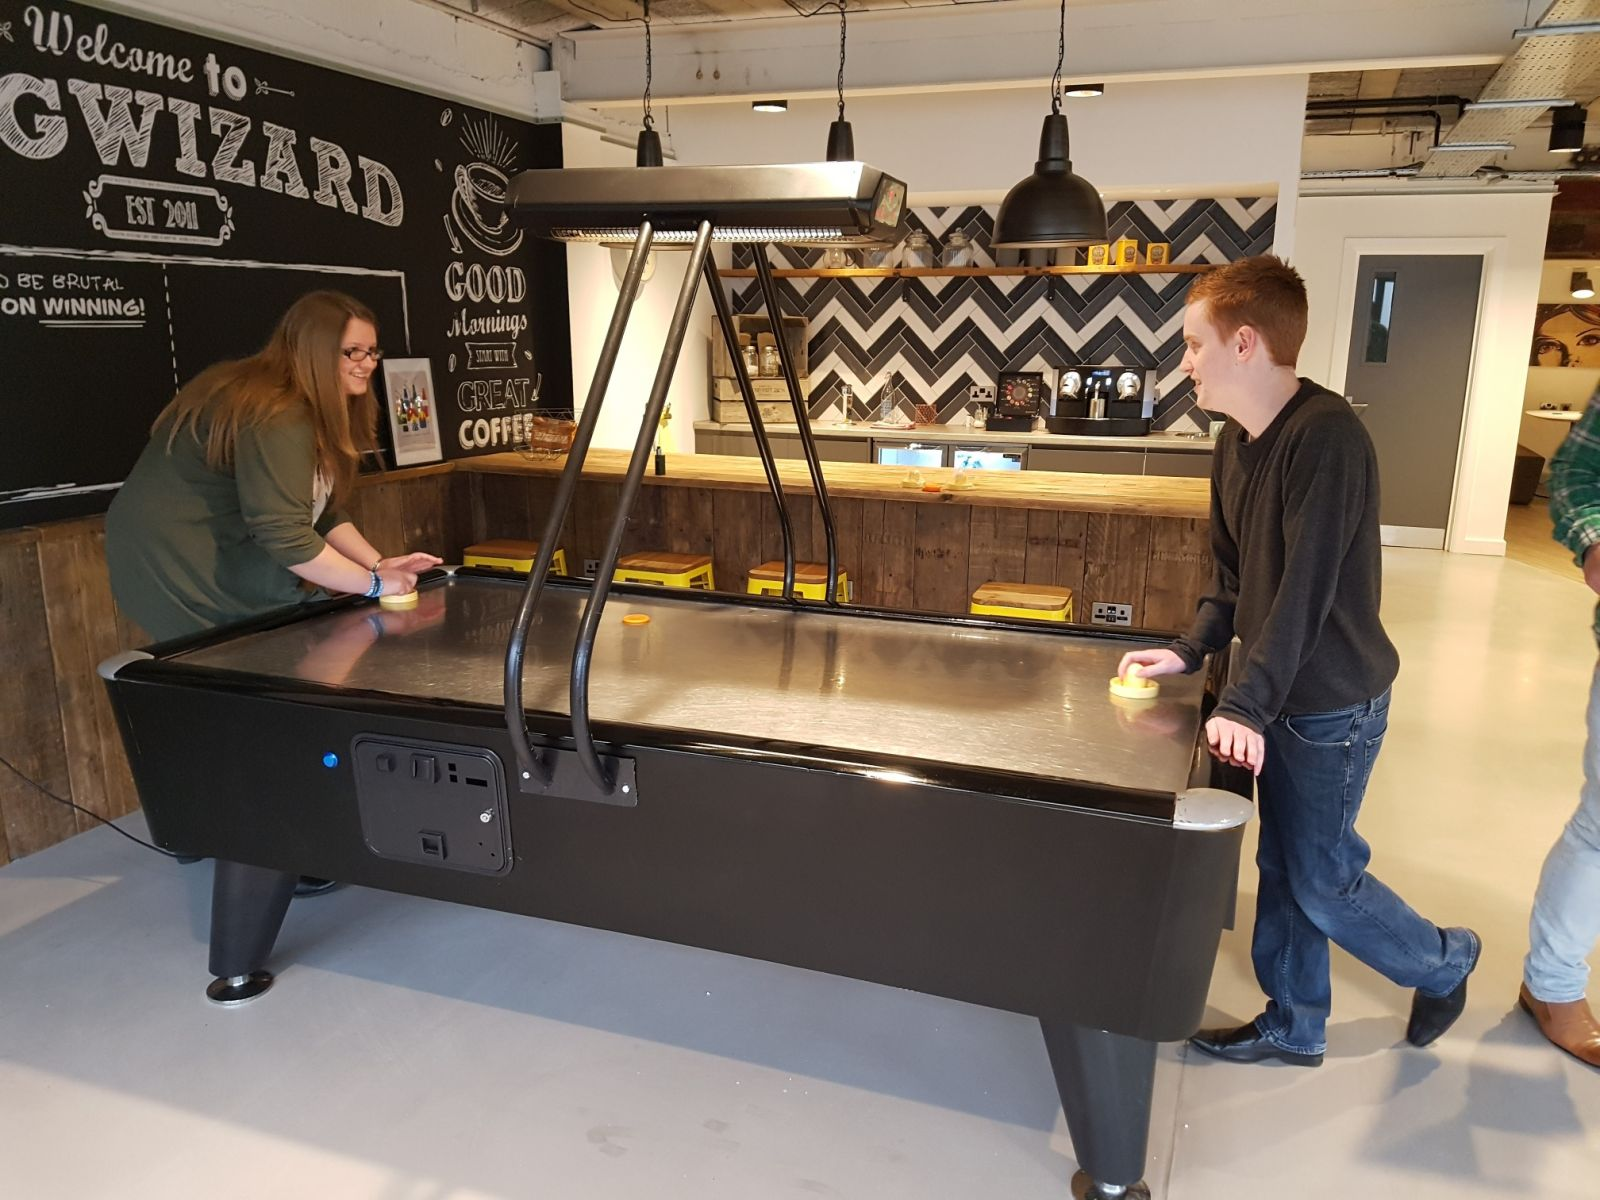 Black reconditioned Fast Track air hockey table